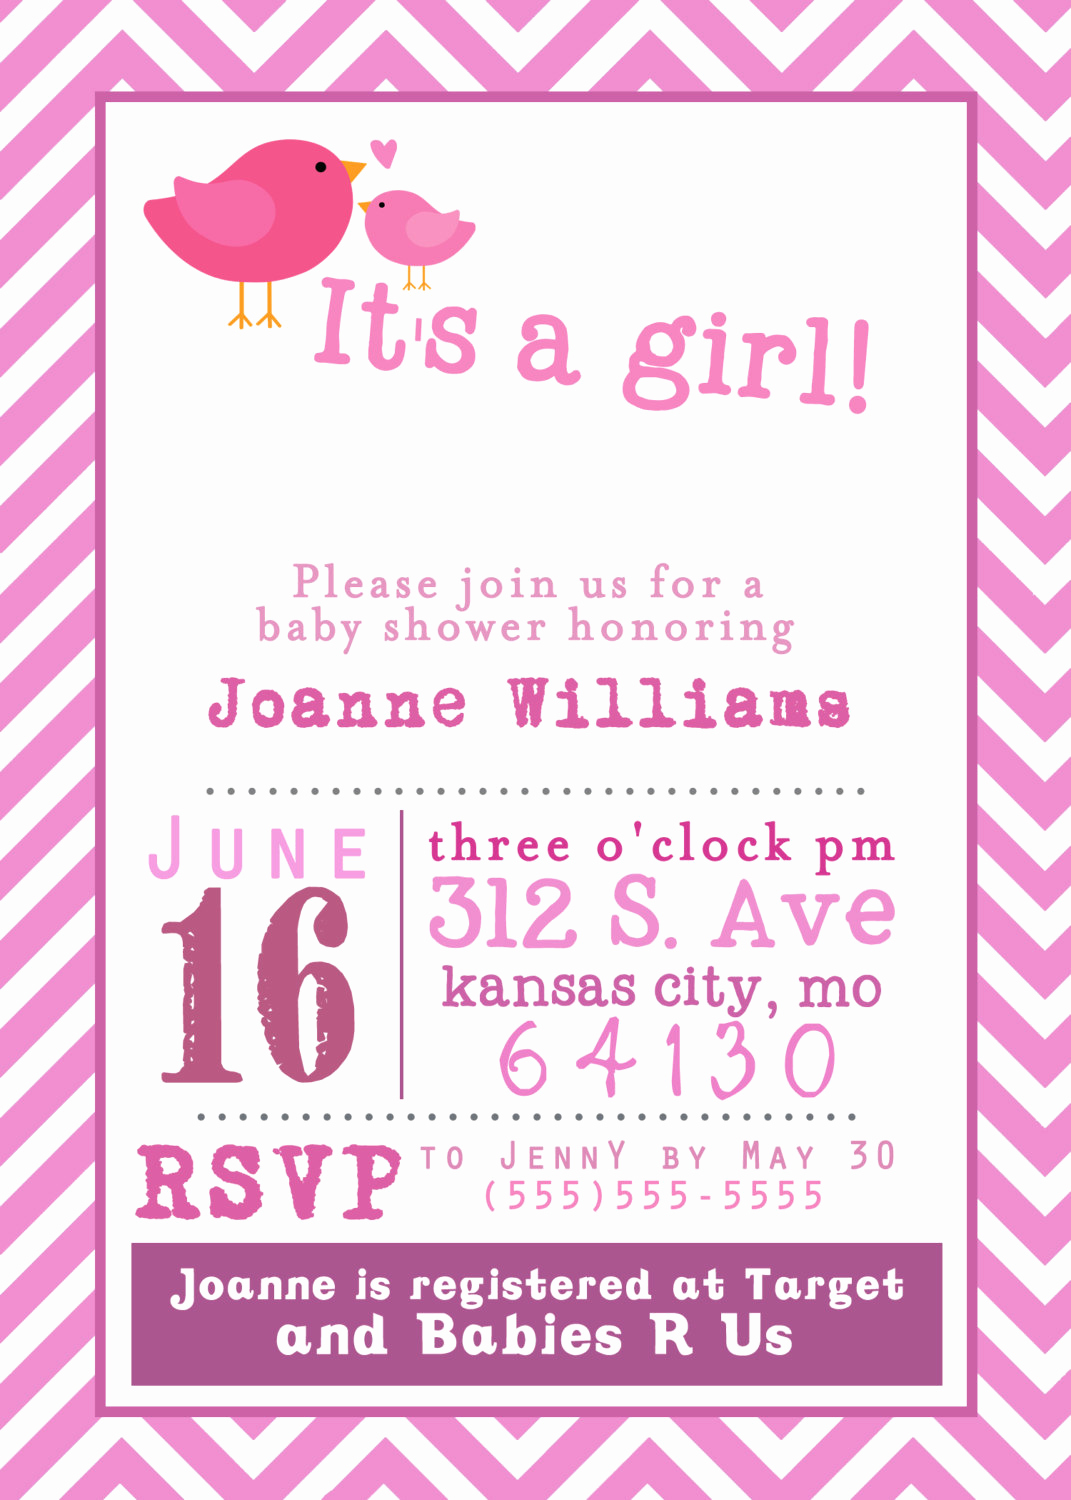 Printable Baby Shower Invitation Templates Elegant Free Baby Shower Invitation Templates Printable